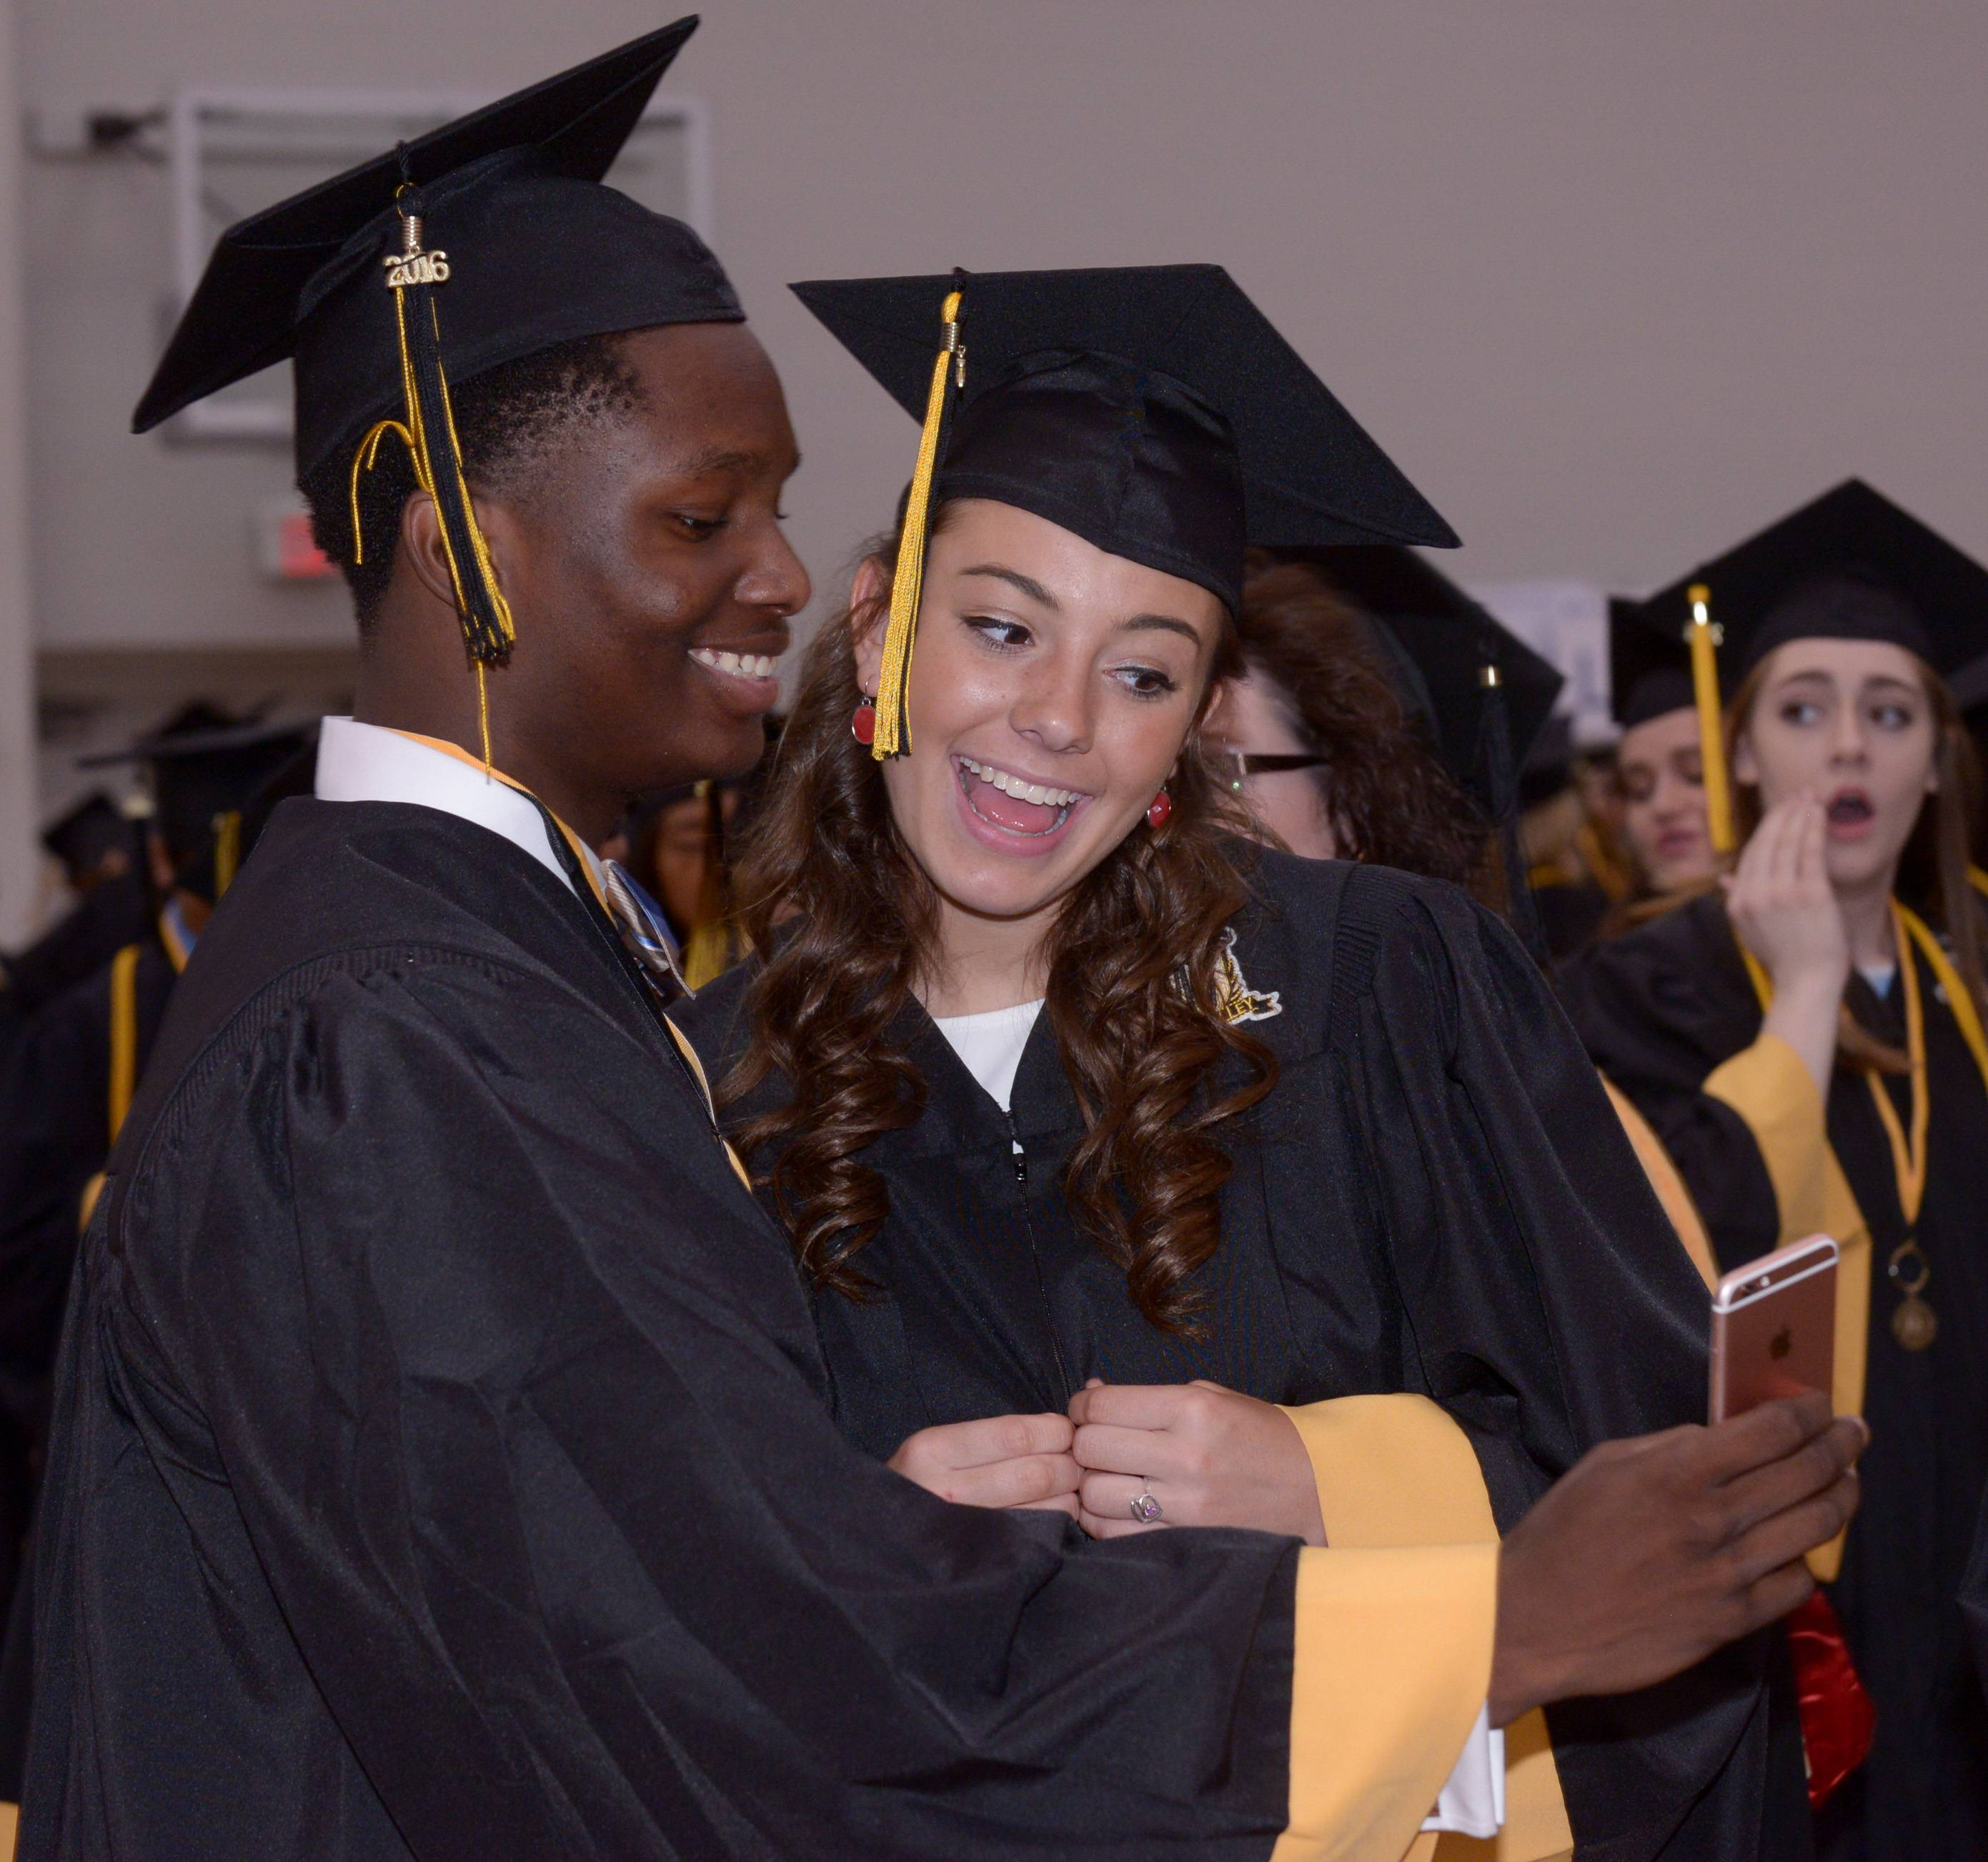 Maurice Burkley and Maci Cotler take a selfie before the start of the Metea Valley High School graduation ceremony at Northern Illinois University in DeKalb on May 29, 2016.